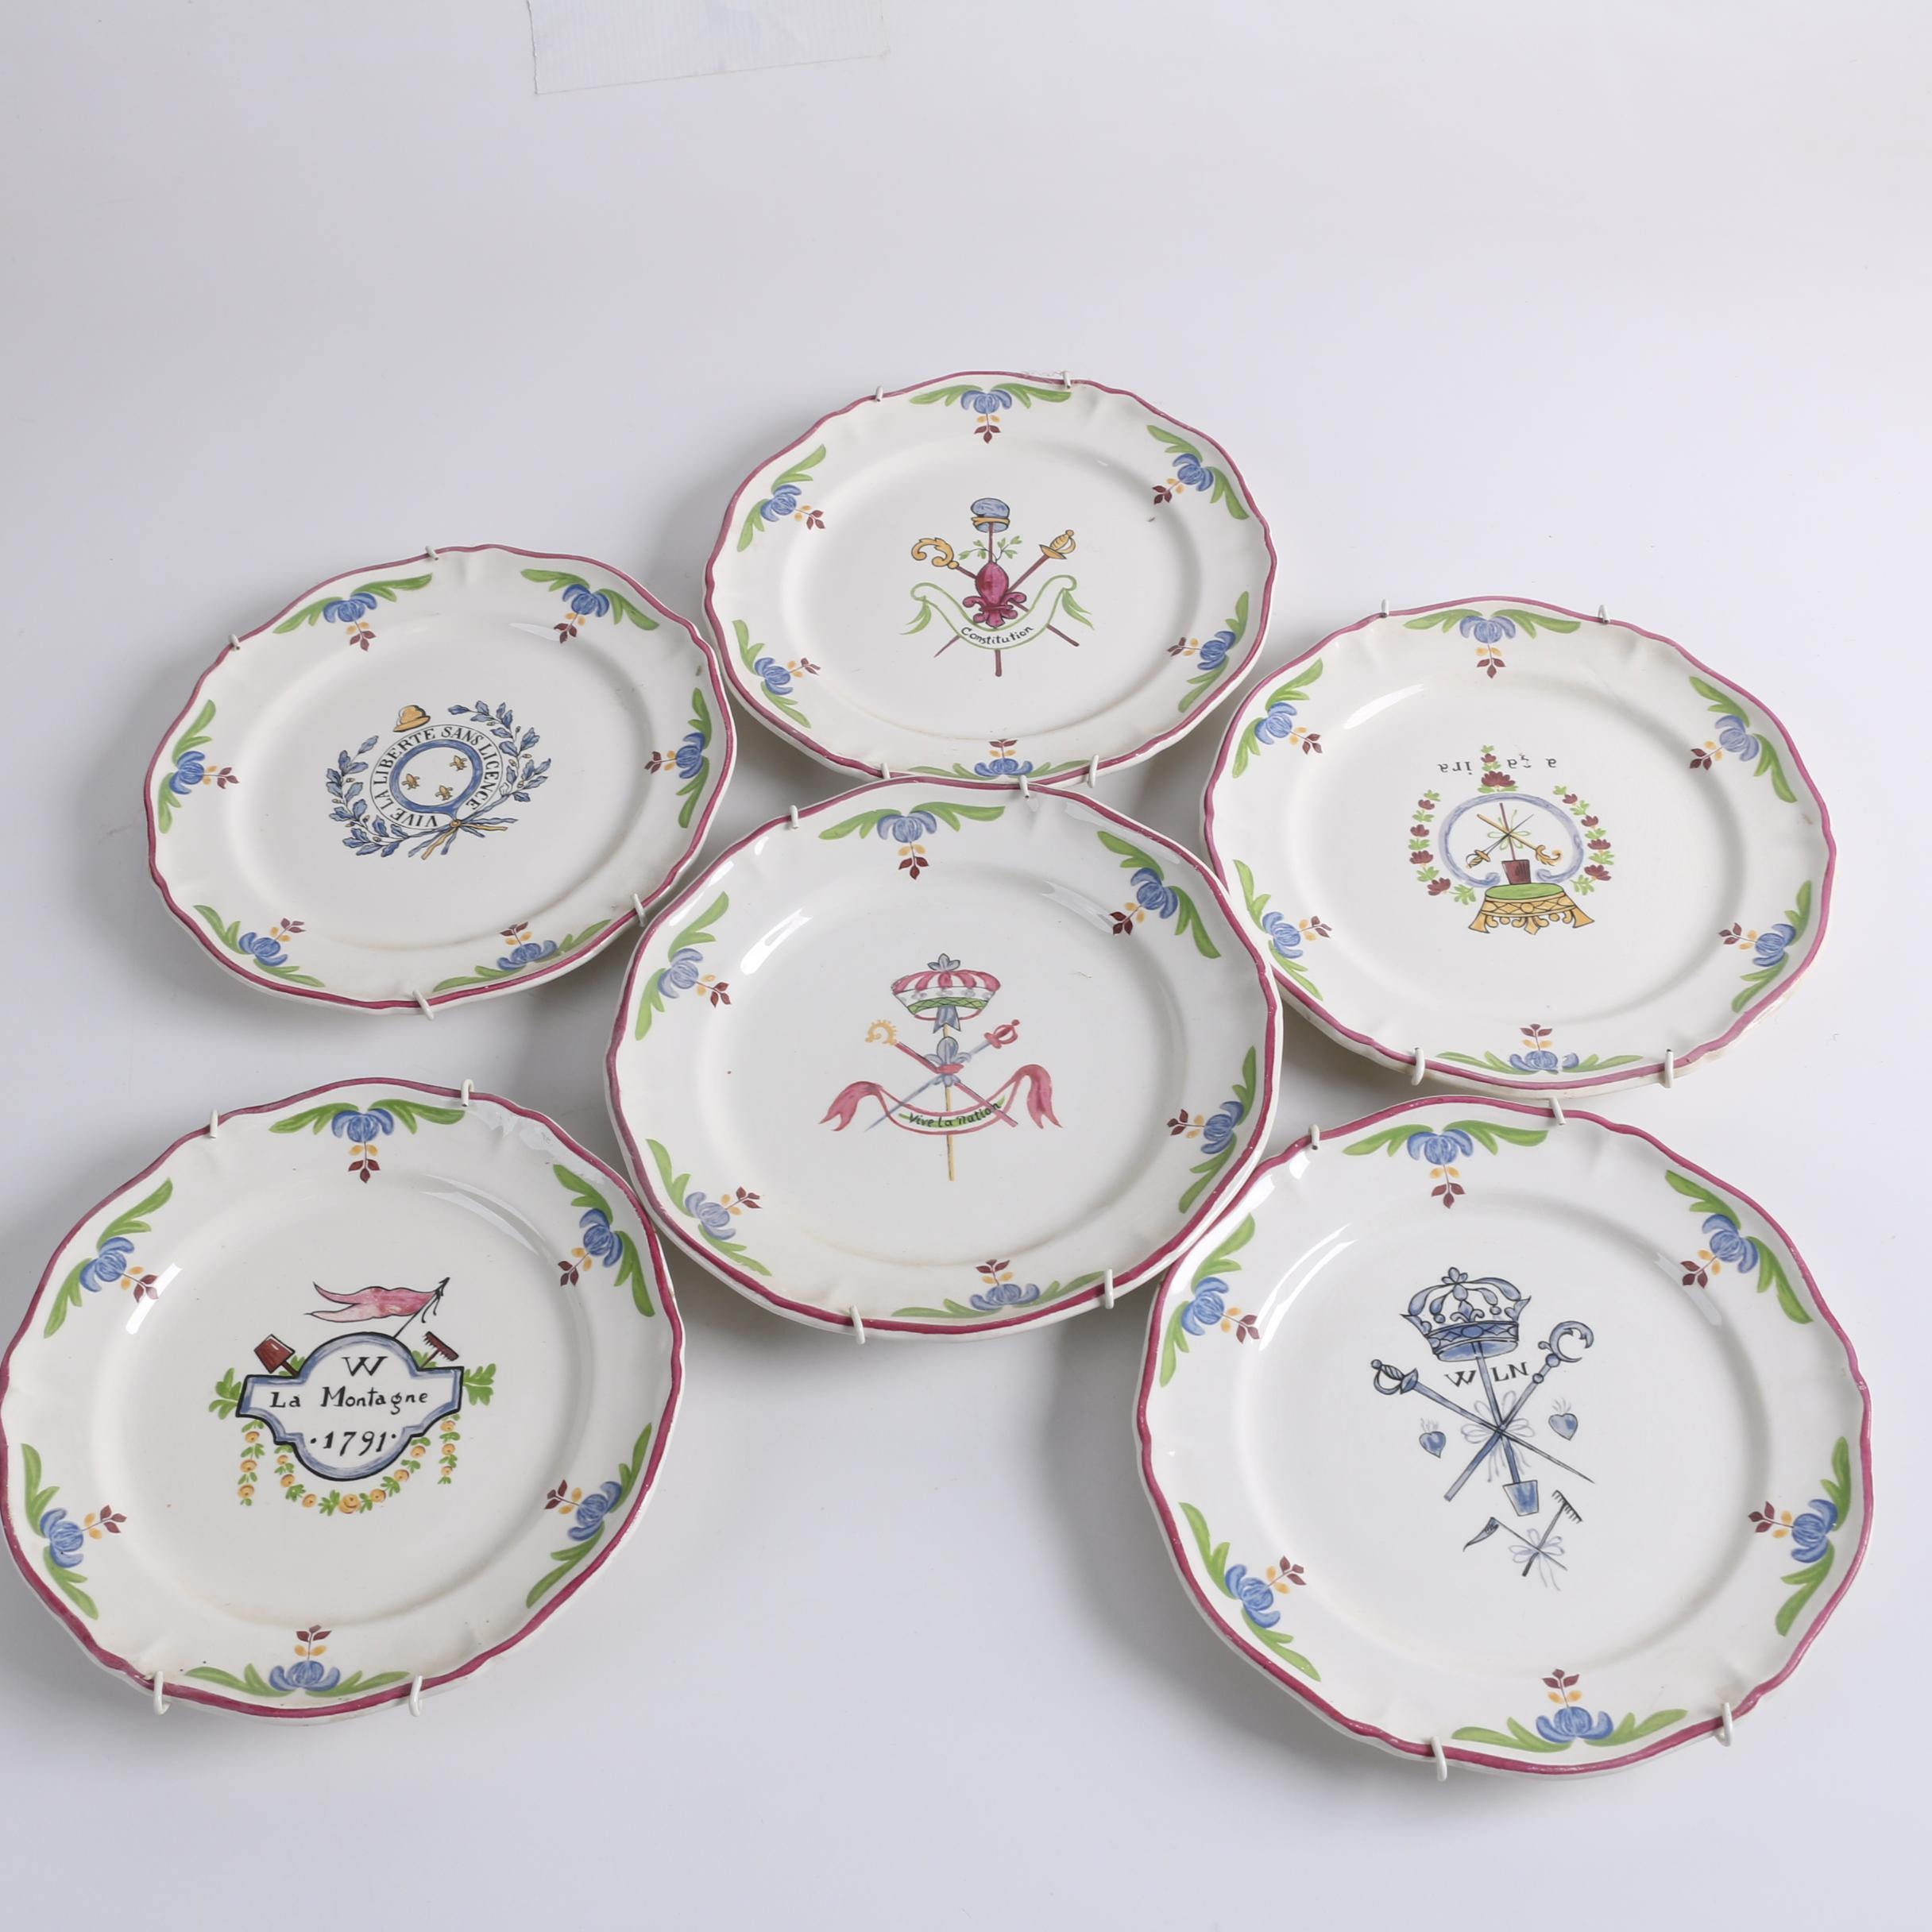 St. Amand French Faience Plates Featuring French Revolution Crests